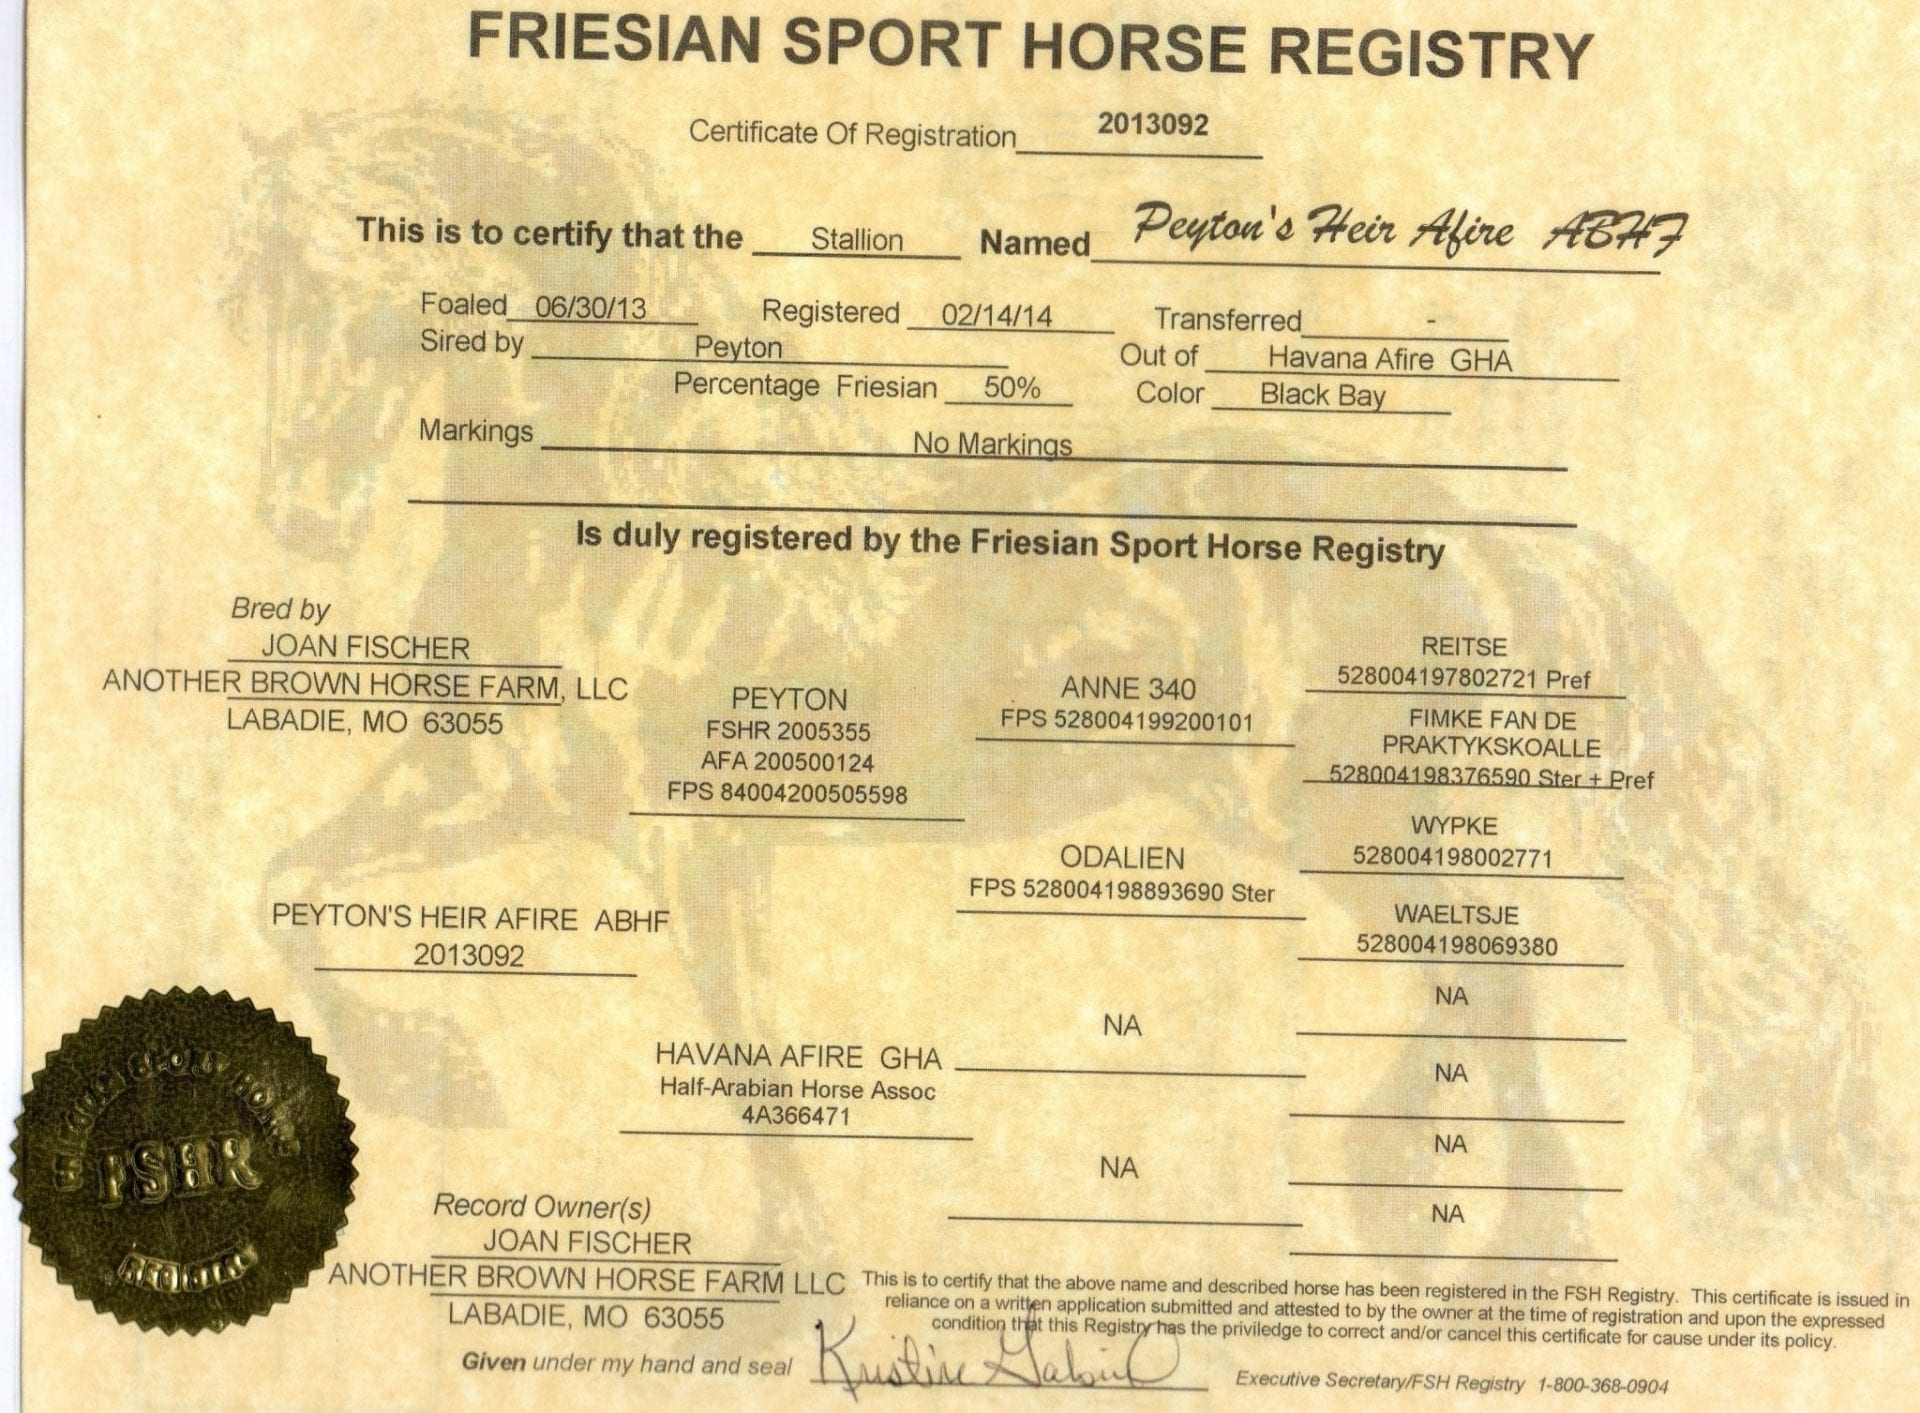 Tyrion's registration